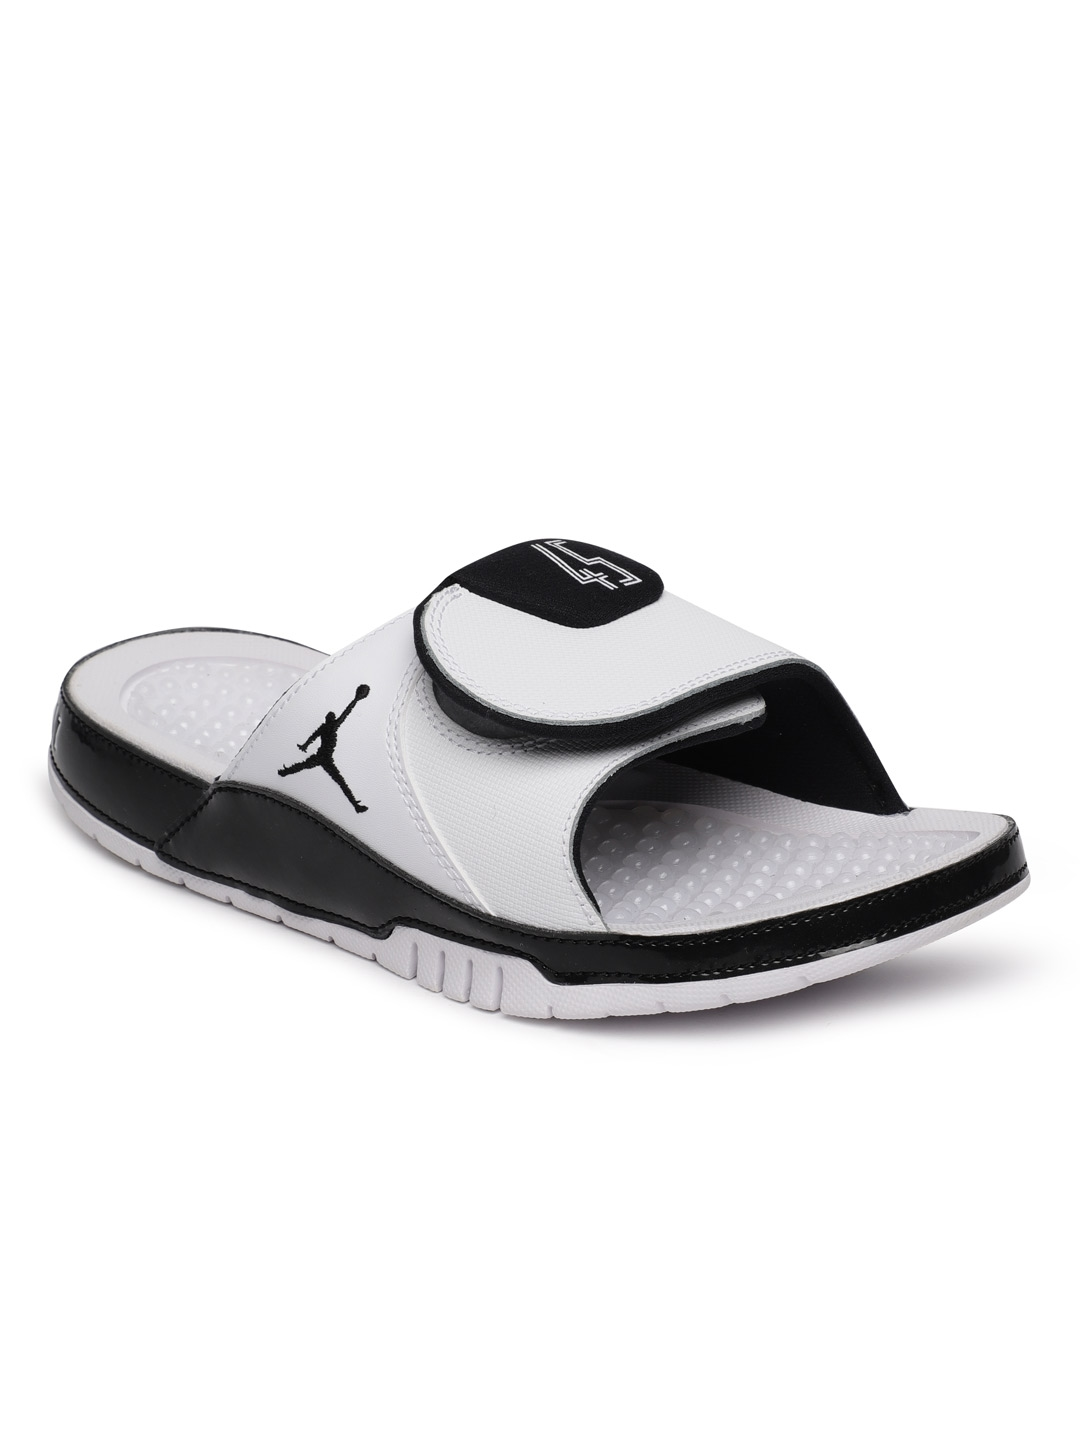 0c861b63c Buy Nike Men White JORDAN HYDRO XI RETRO Sliders - Flip Flops for ...